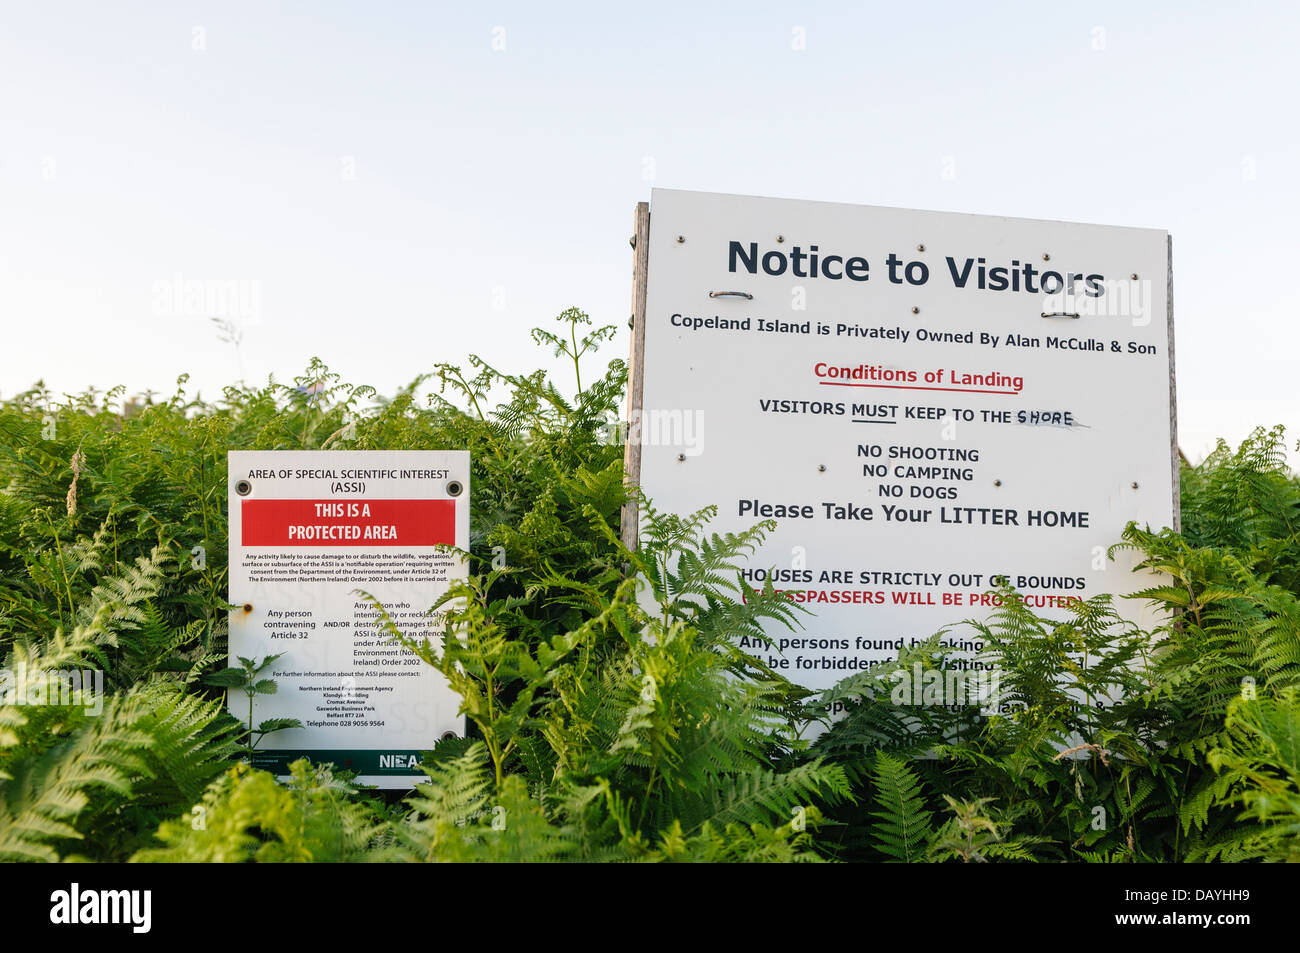 Rules for visitors to the Copeland Island - Stock Image